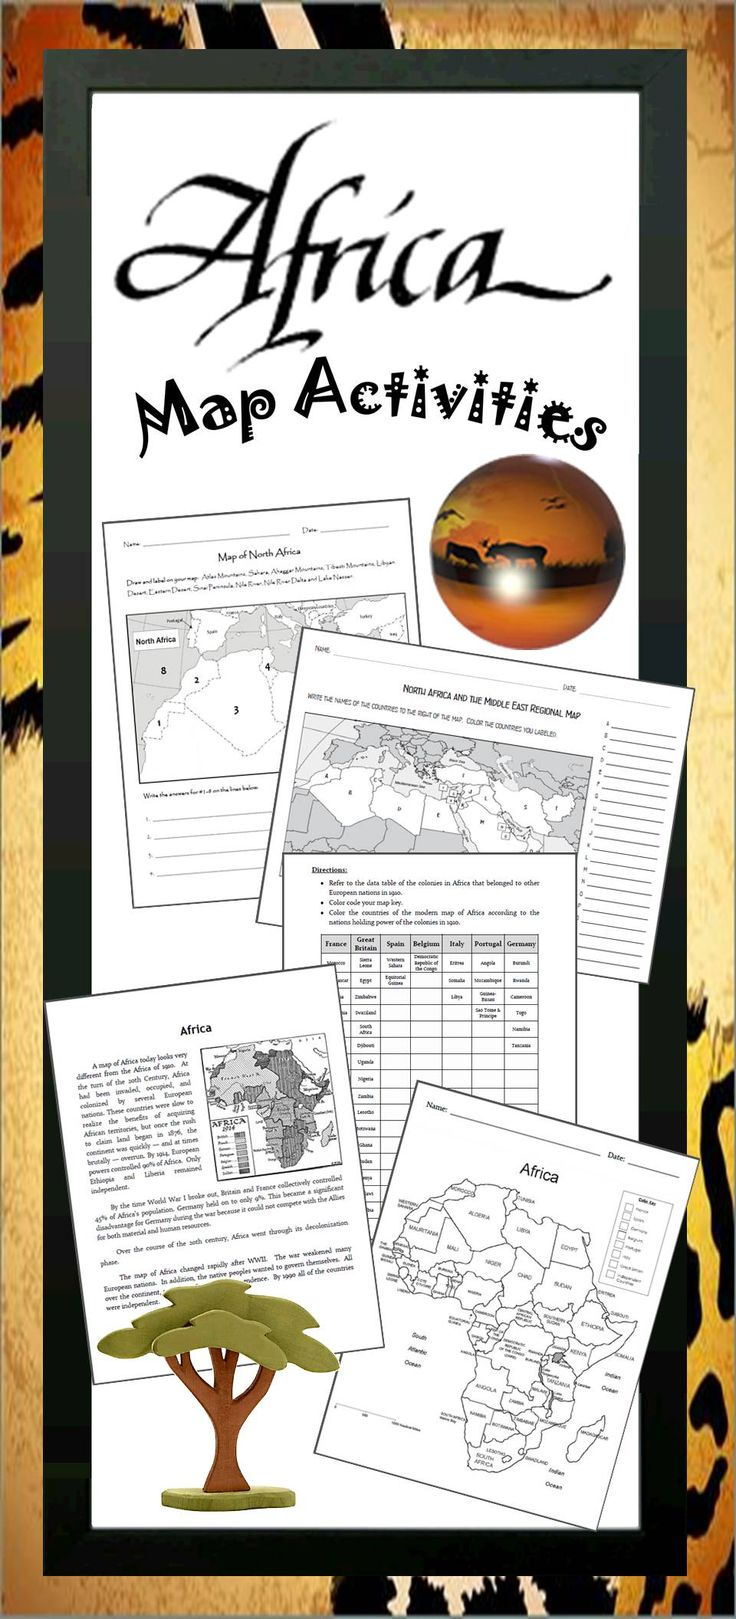 Add to your units about Africa with these color and label political maps by Jodi's Jewels. Great for middle school and junior high! Visit Jodi's Jewels today!